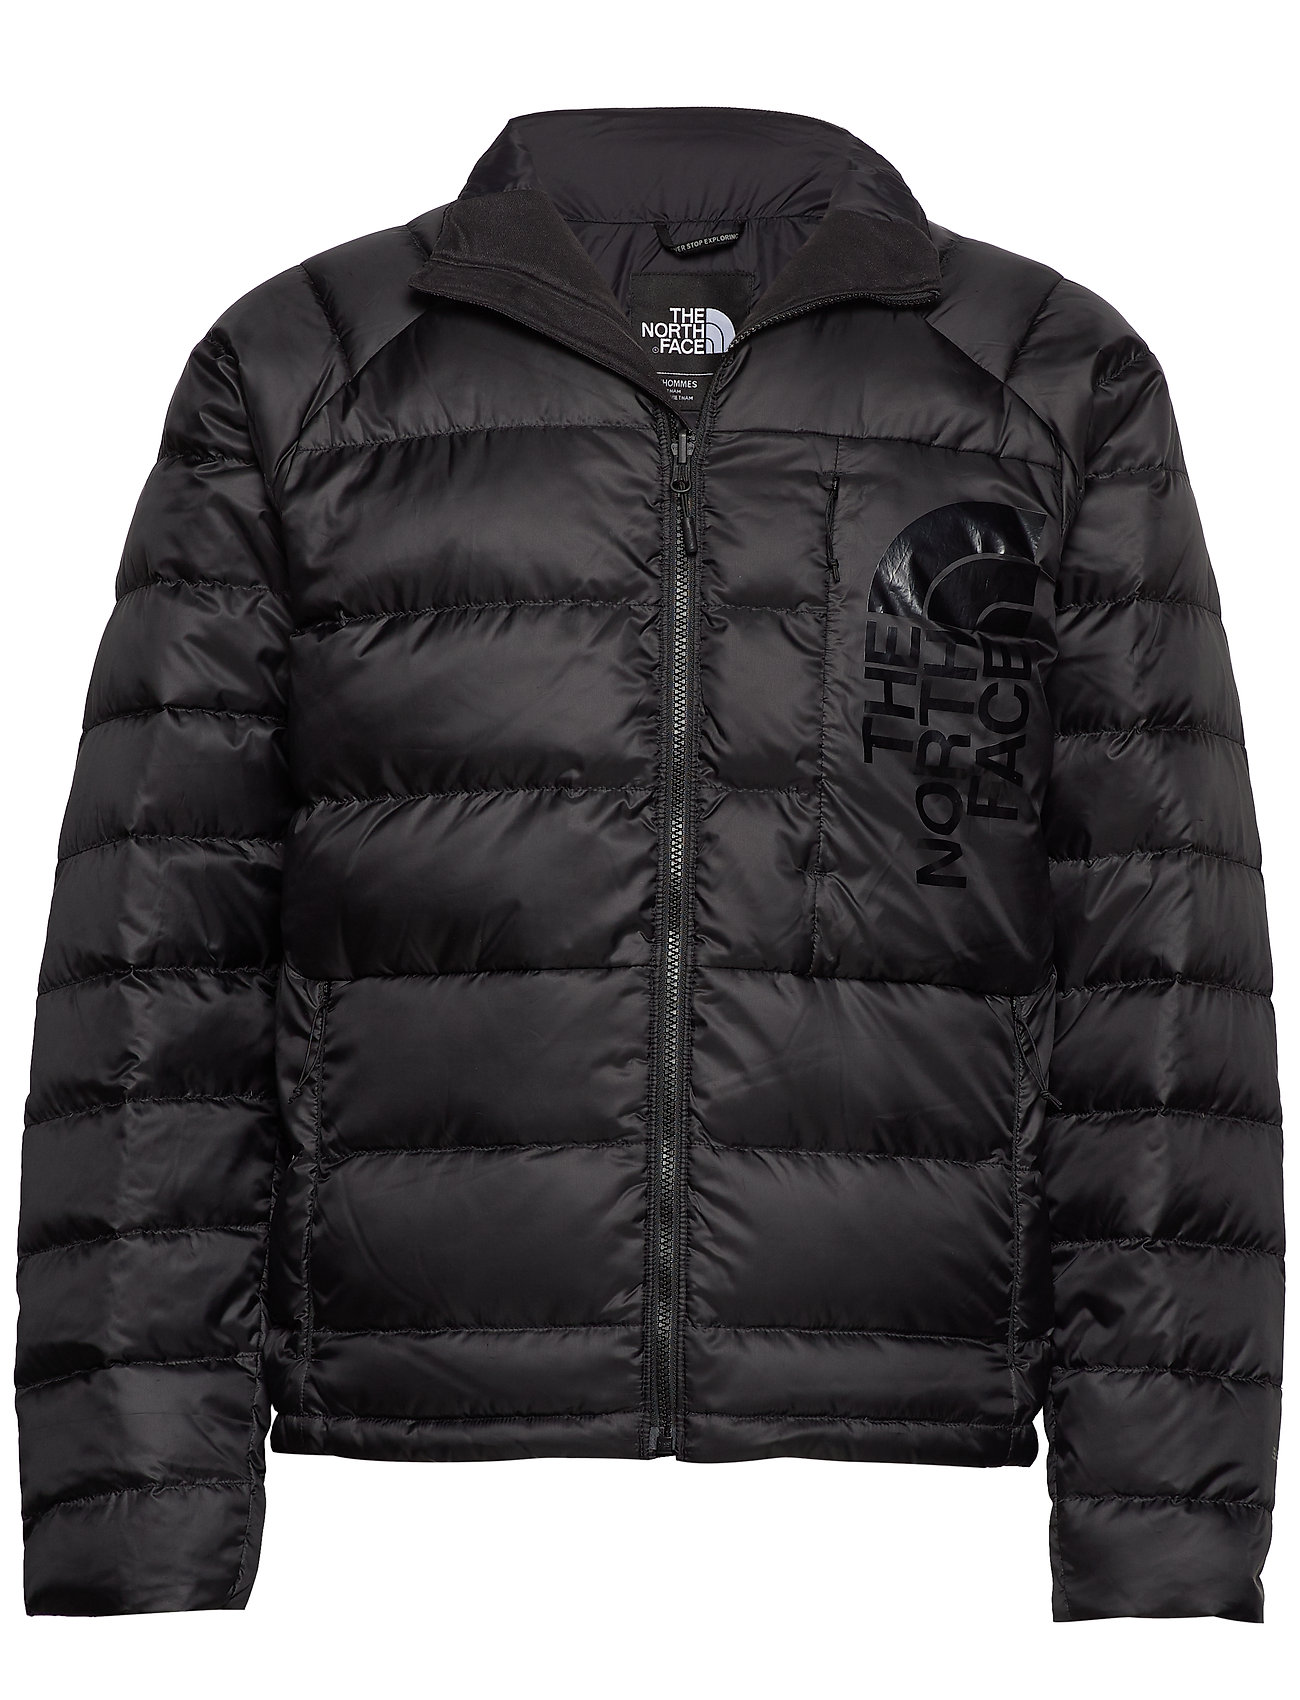 The North Face M PEAKFRONTIER II JA - TNF BLACK